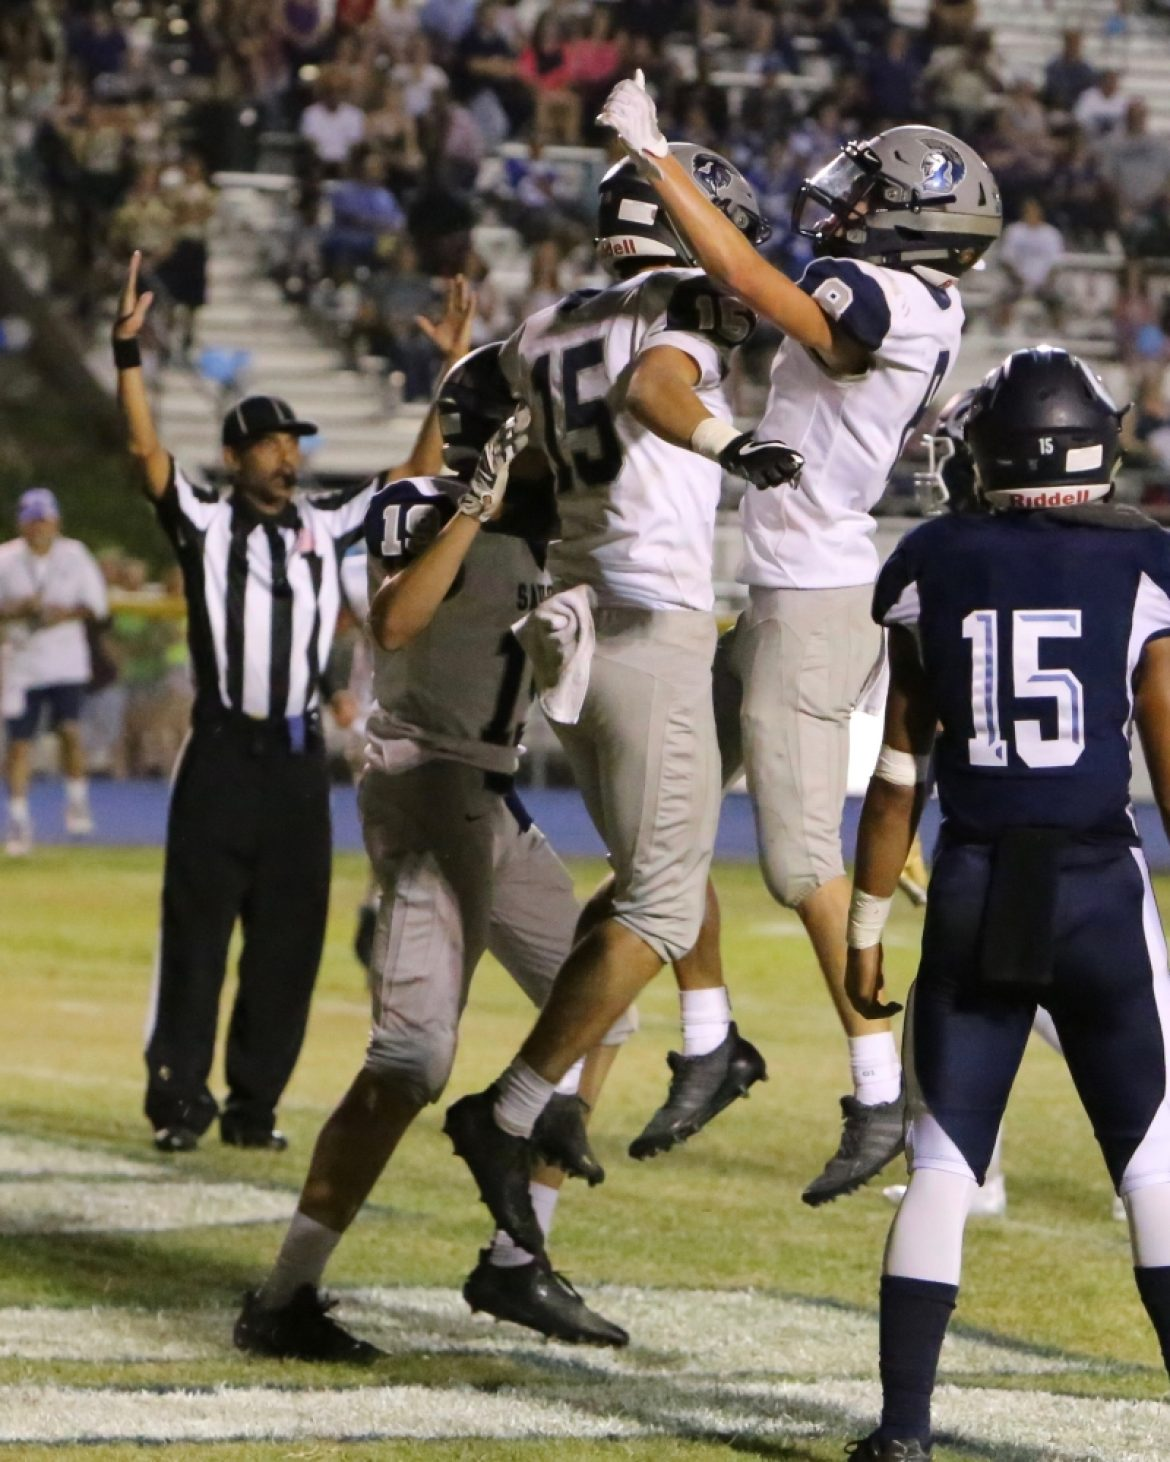 Saugus football aims for a four-quarter showing